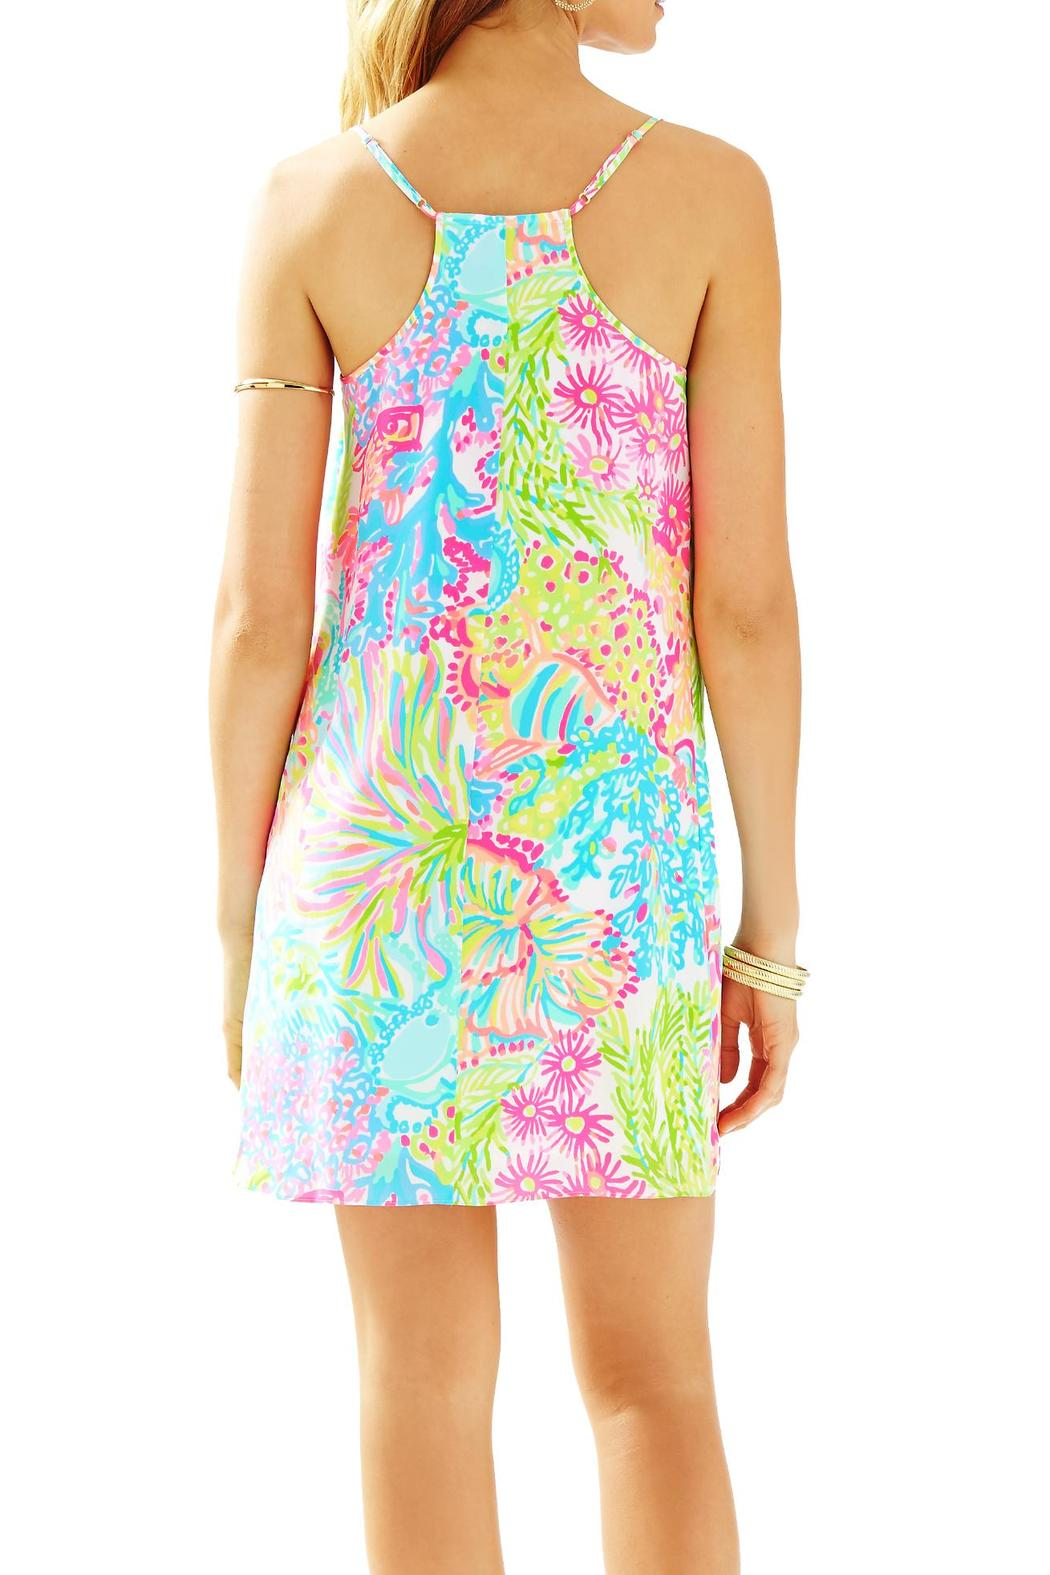 Lily Pulitzer Starbucks Lilly Pulitzer Just B Cause